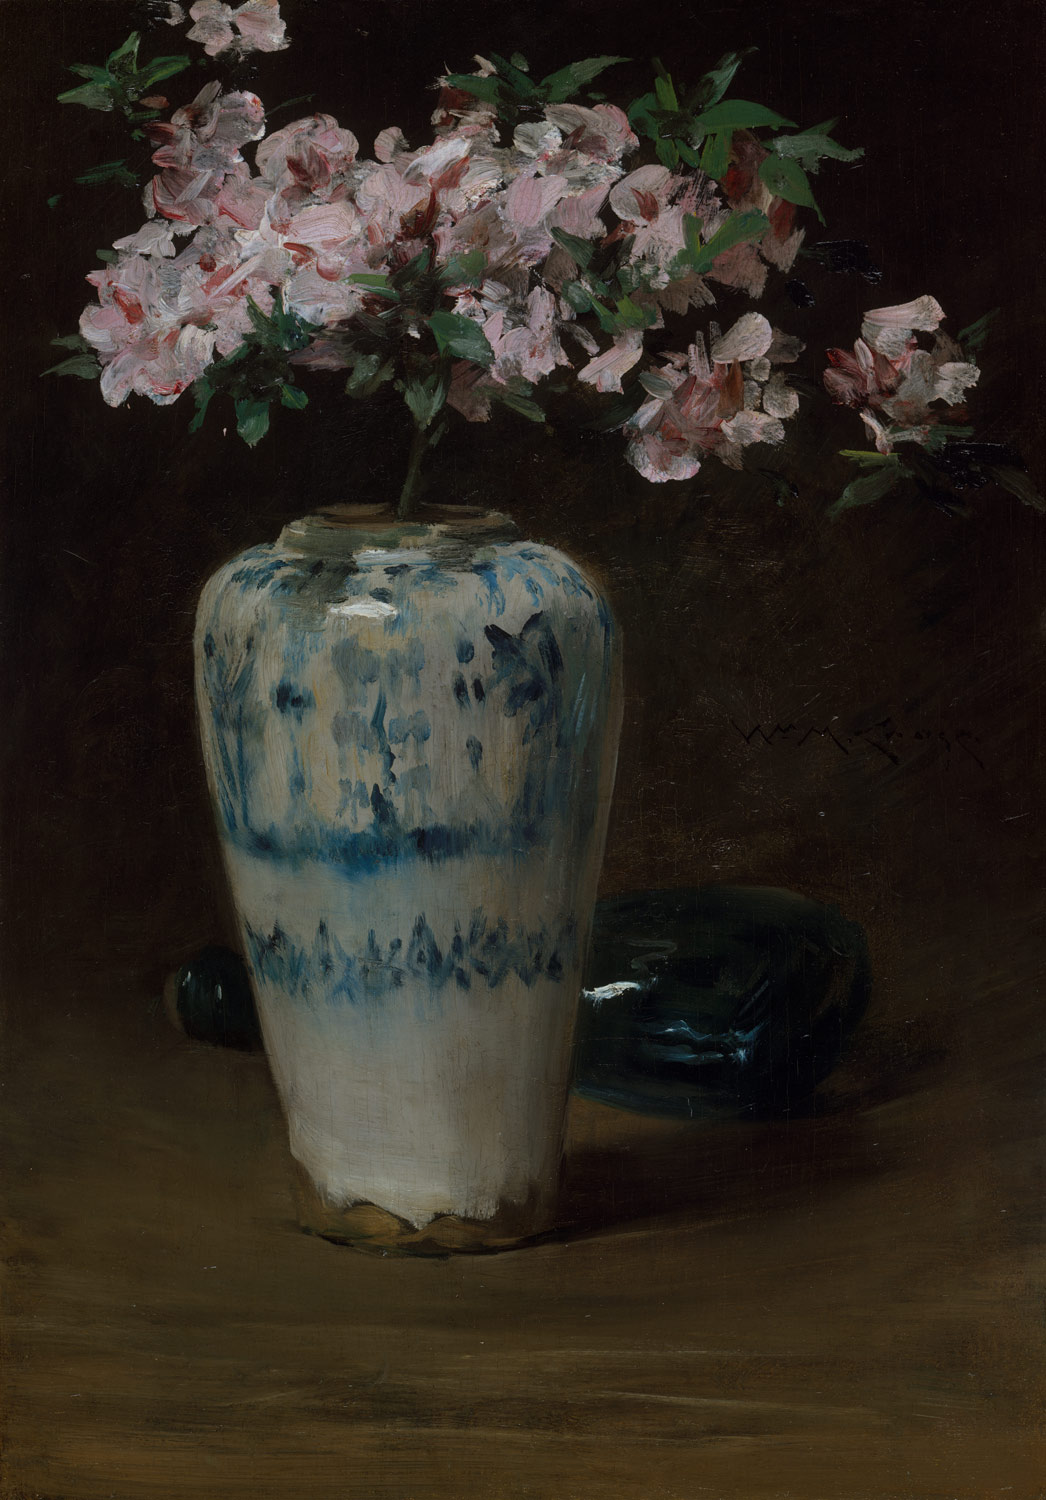 william merritt chase 1849 1916 essay heilbrunn timeline of pink azalea chinese vase